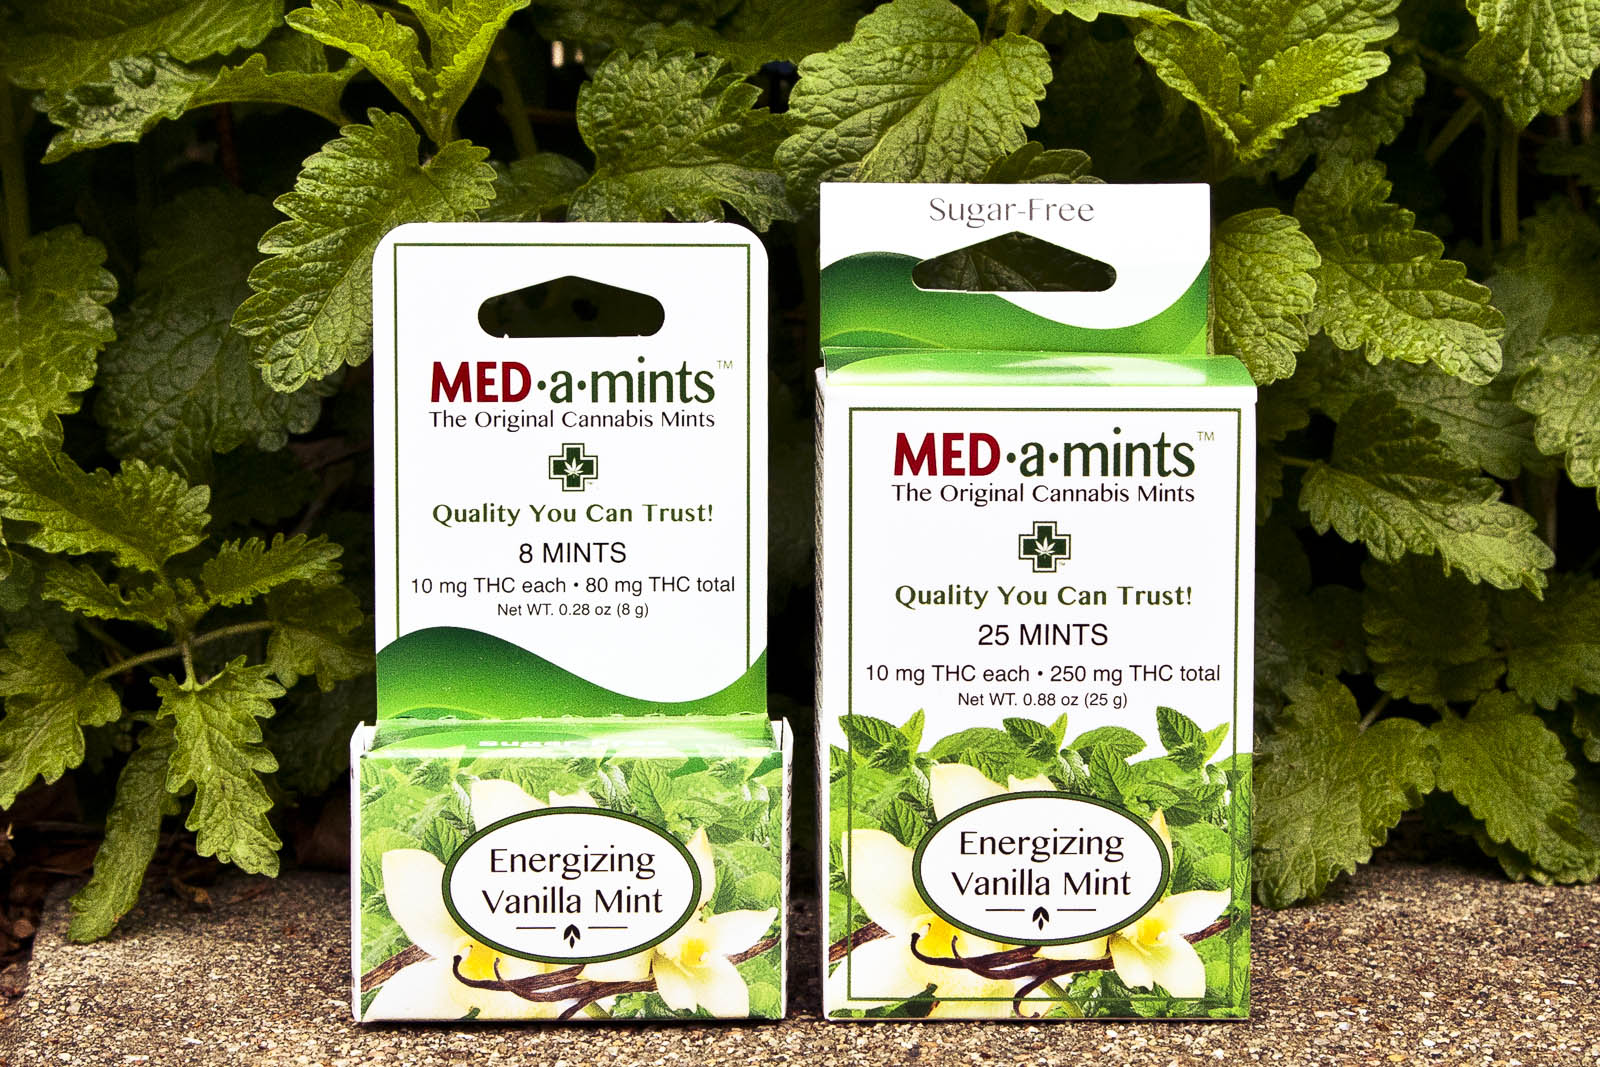 medamints-potent-thc-cannabis-marijuana-mints-030